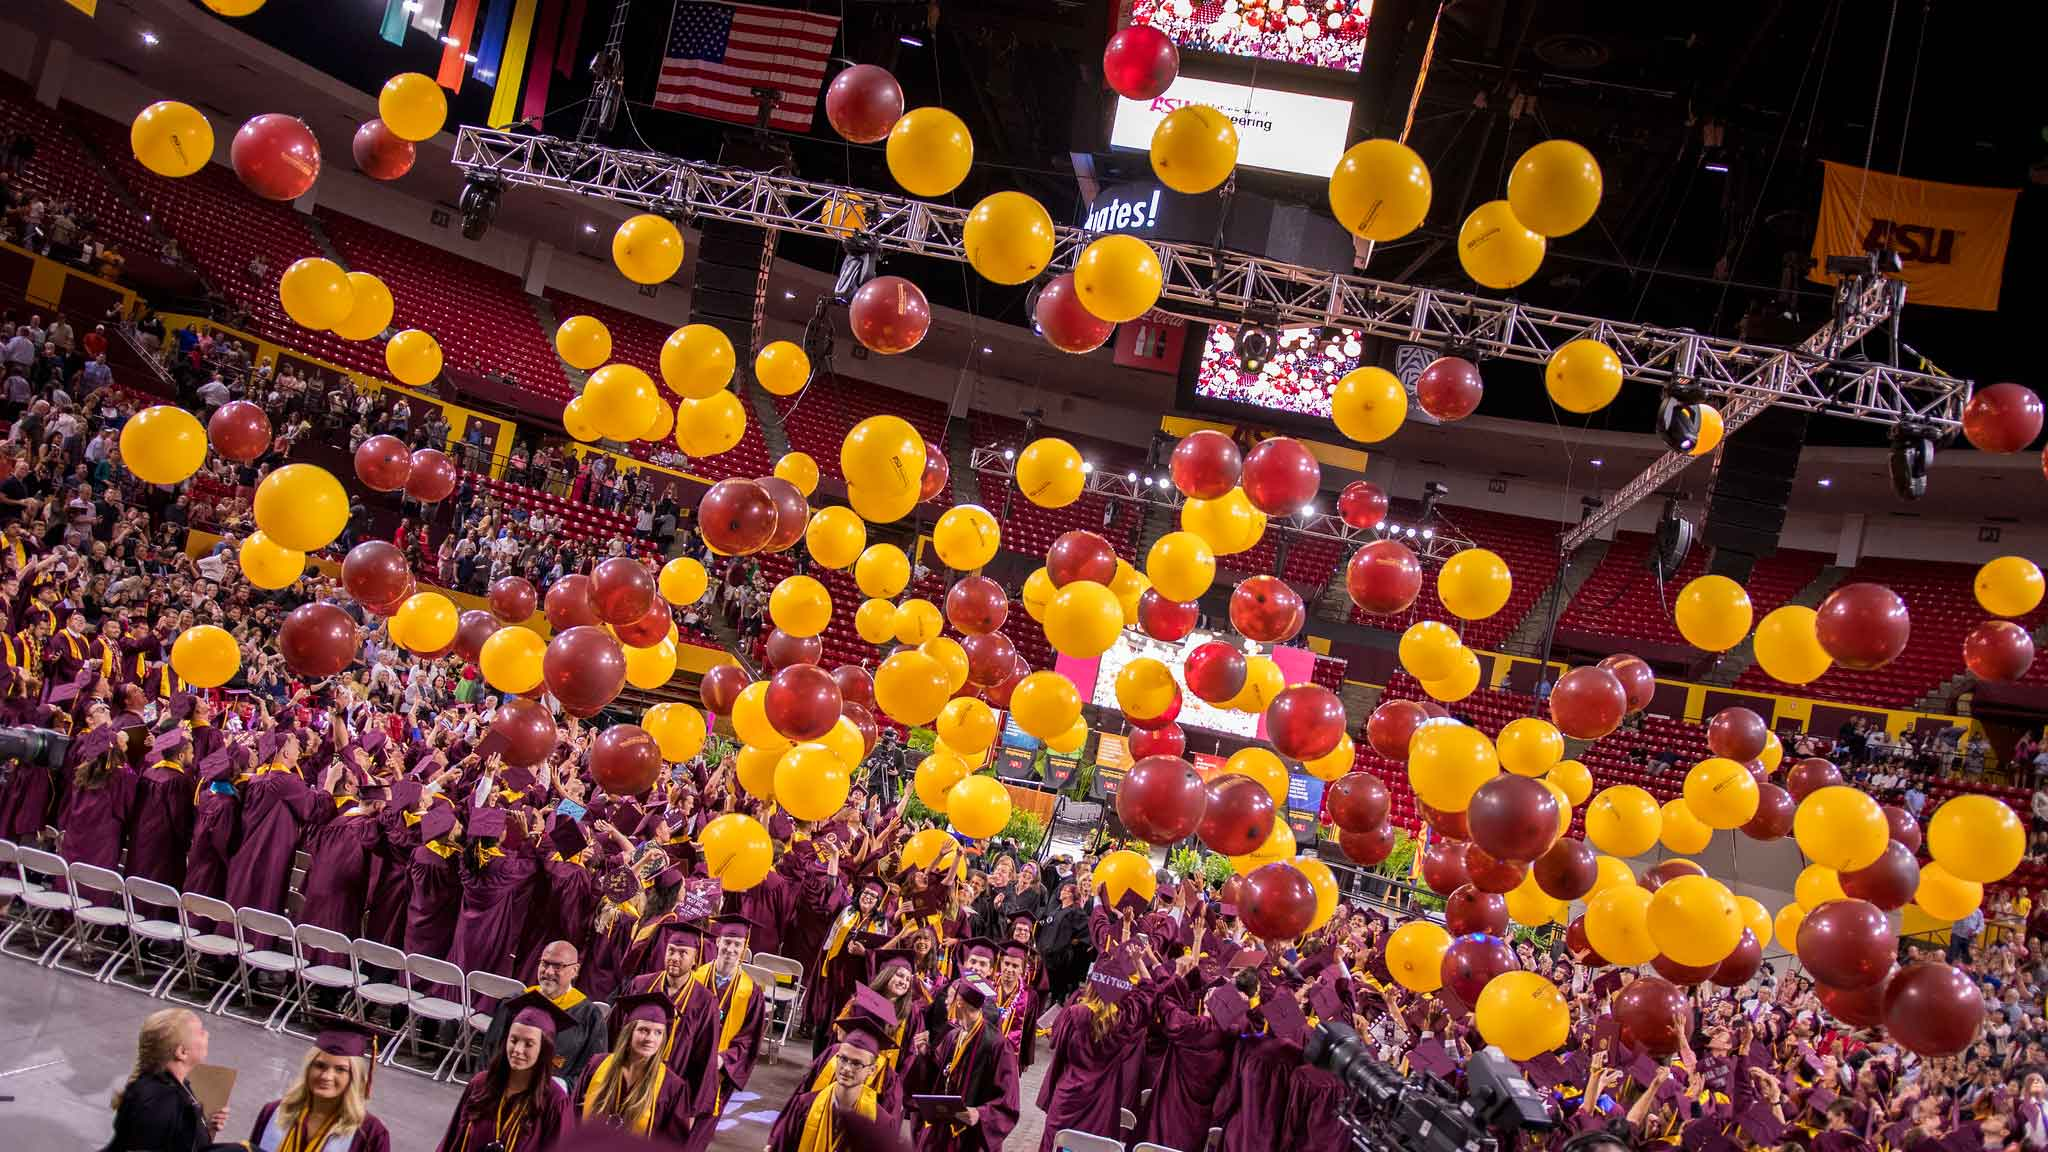 View of Desert Financial Arena full of engineering graduates and hundreds of balloons dropping from the ceiling